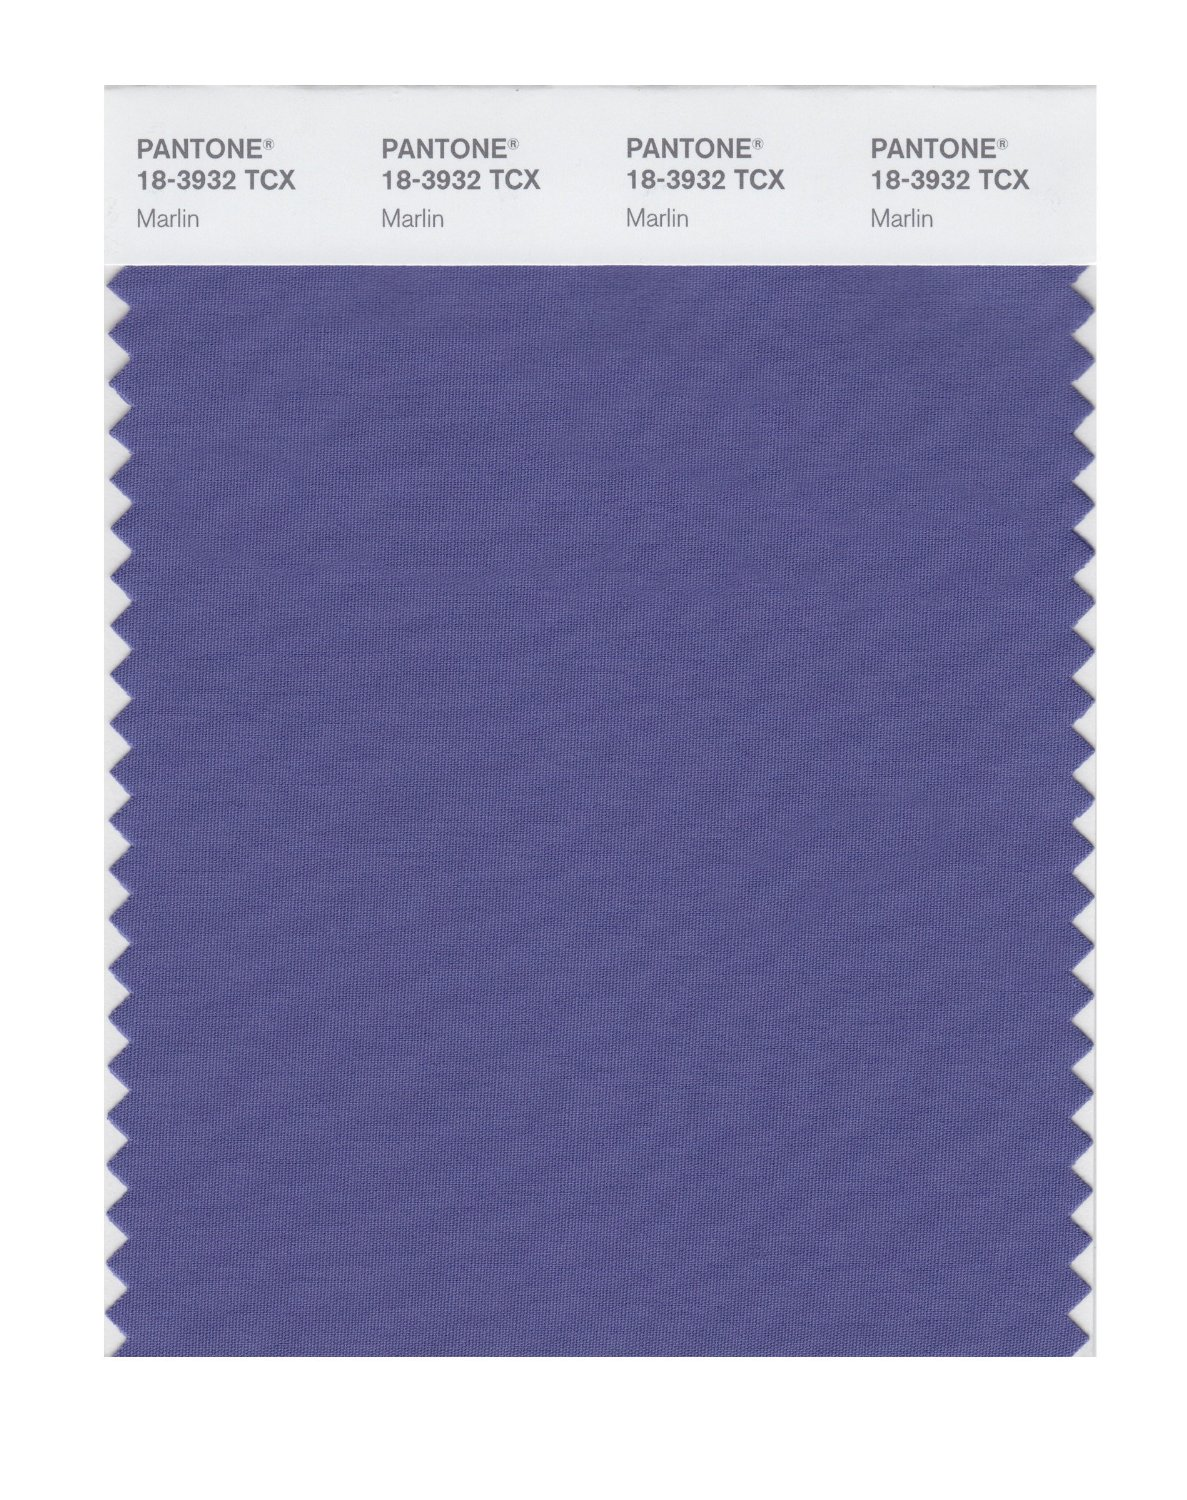 Pantone Smart Swatch 18-3932 Marlin